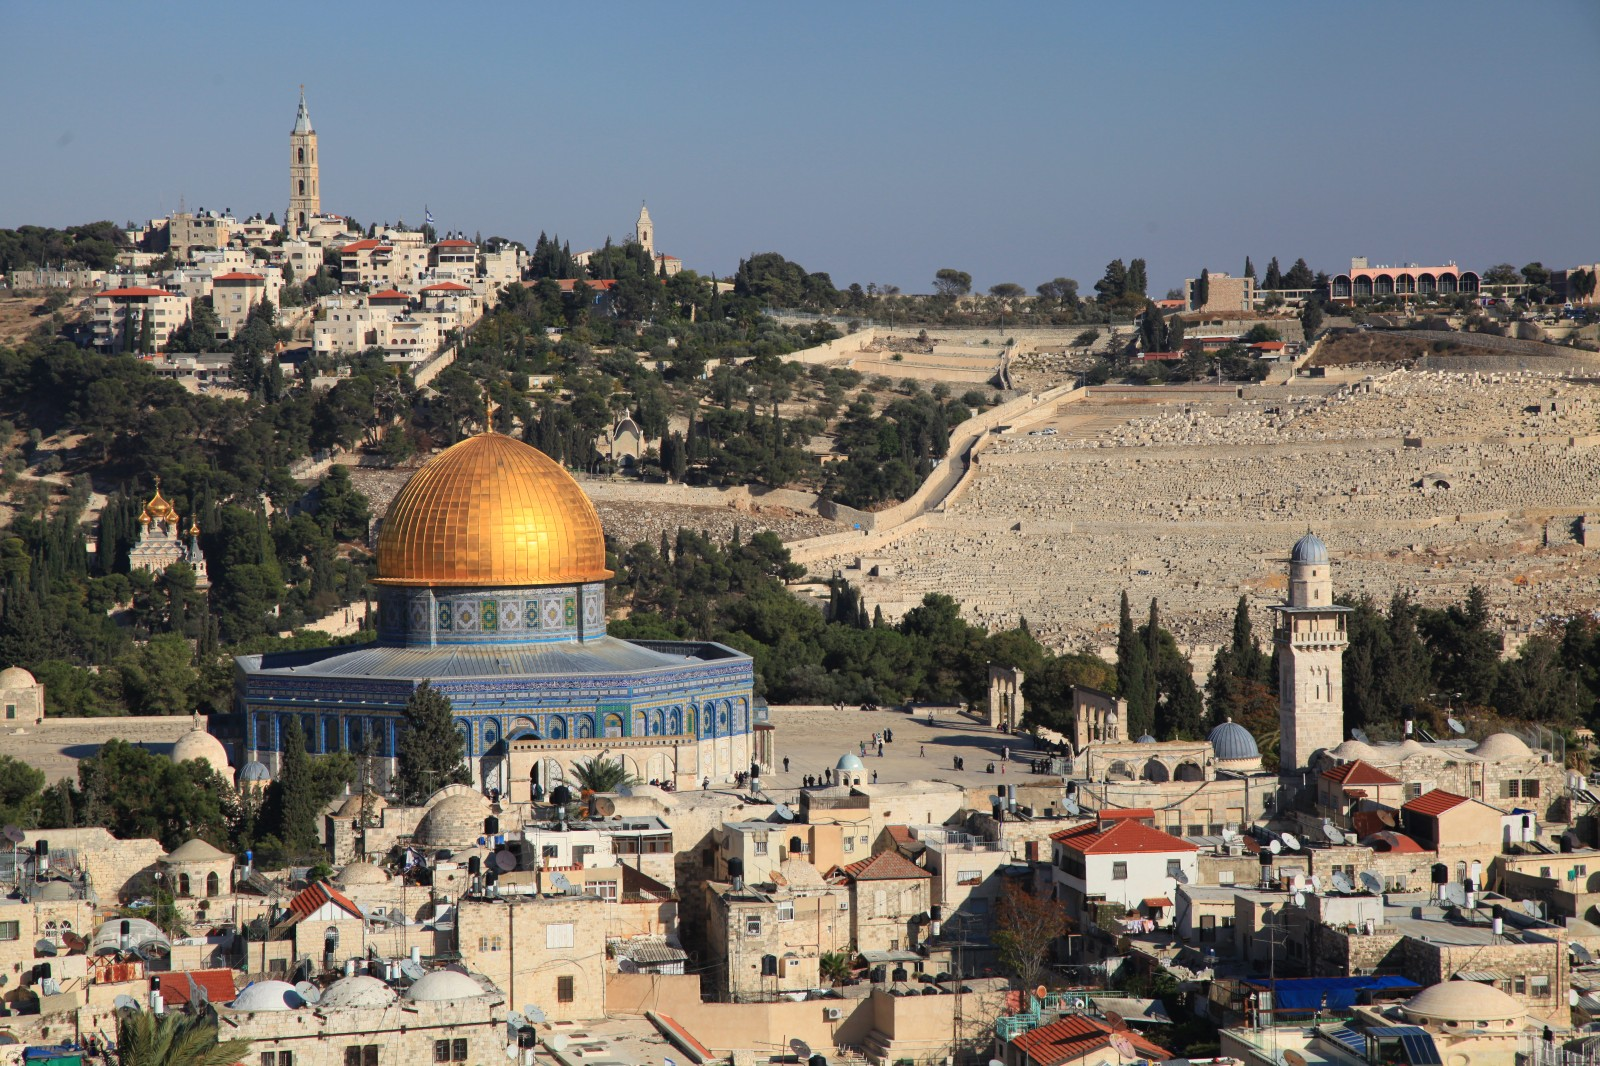 Muslims walking around the Temple Mount, others are not allowed for the whole week due to the holidays